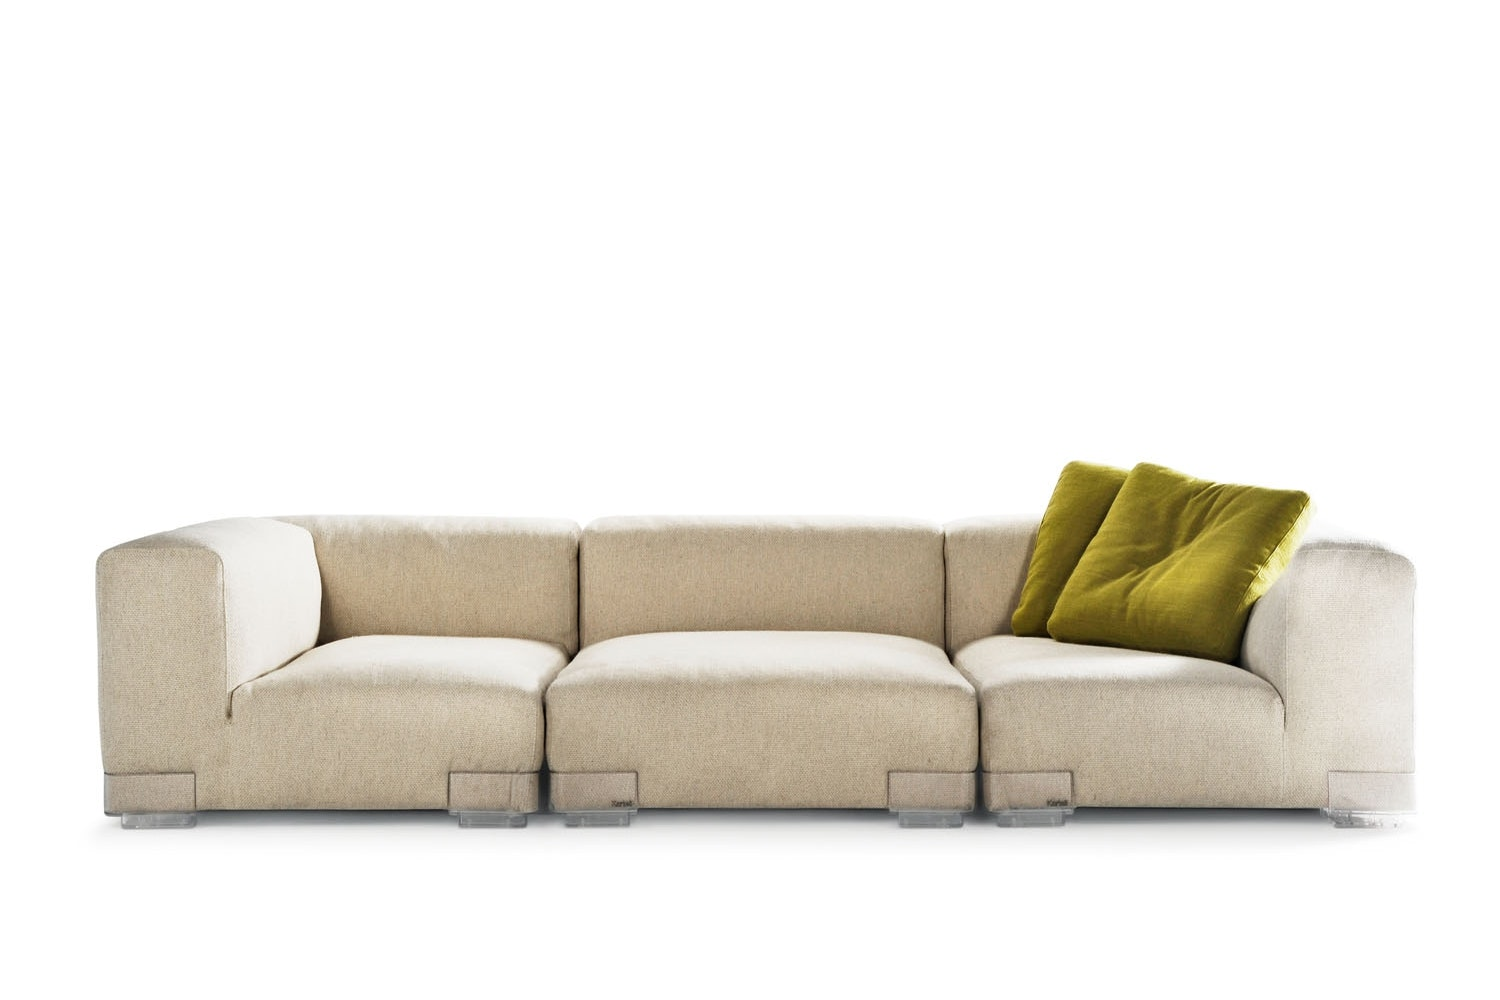 Plastics Duo Sofa by Piero Lissoni for Kartell